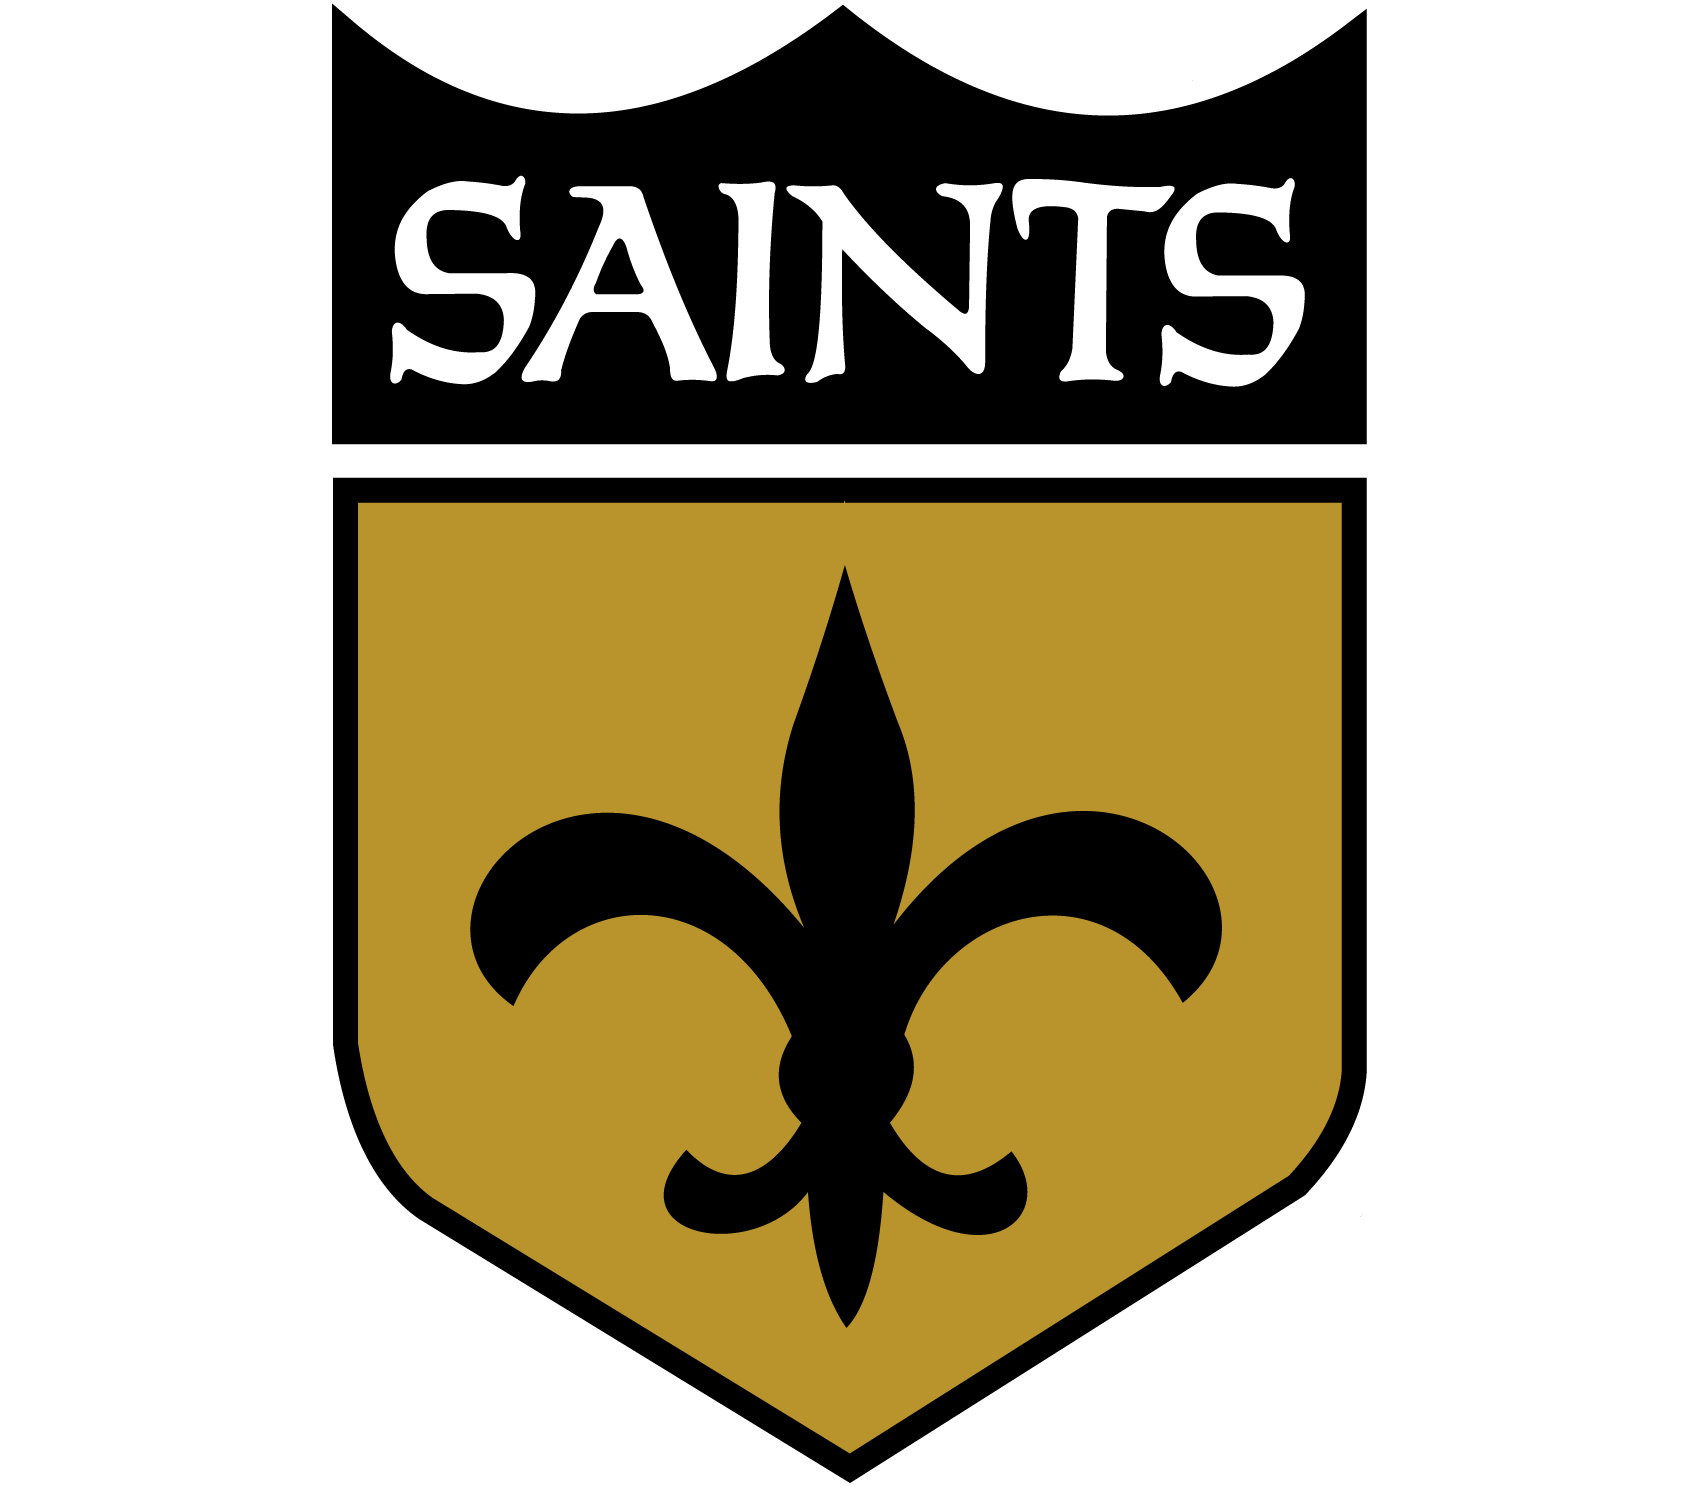 saints - photo #16